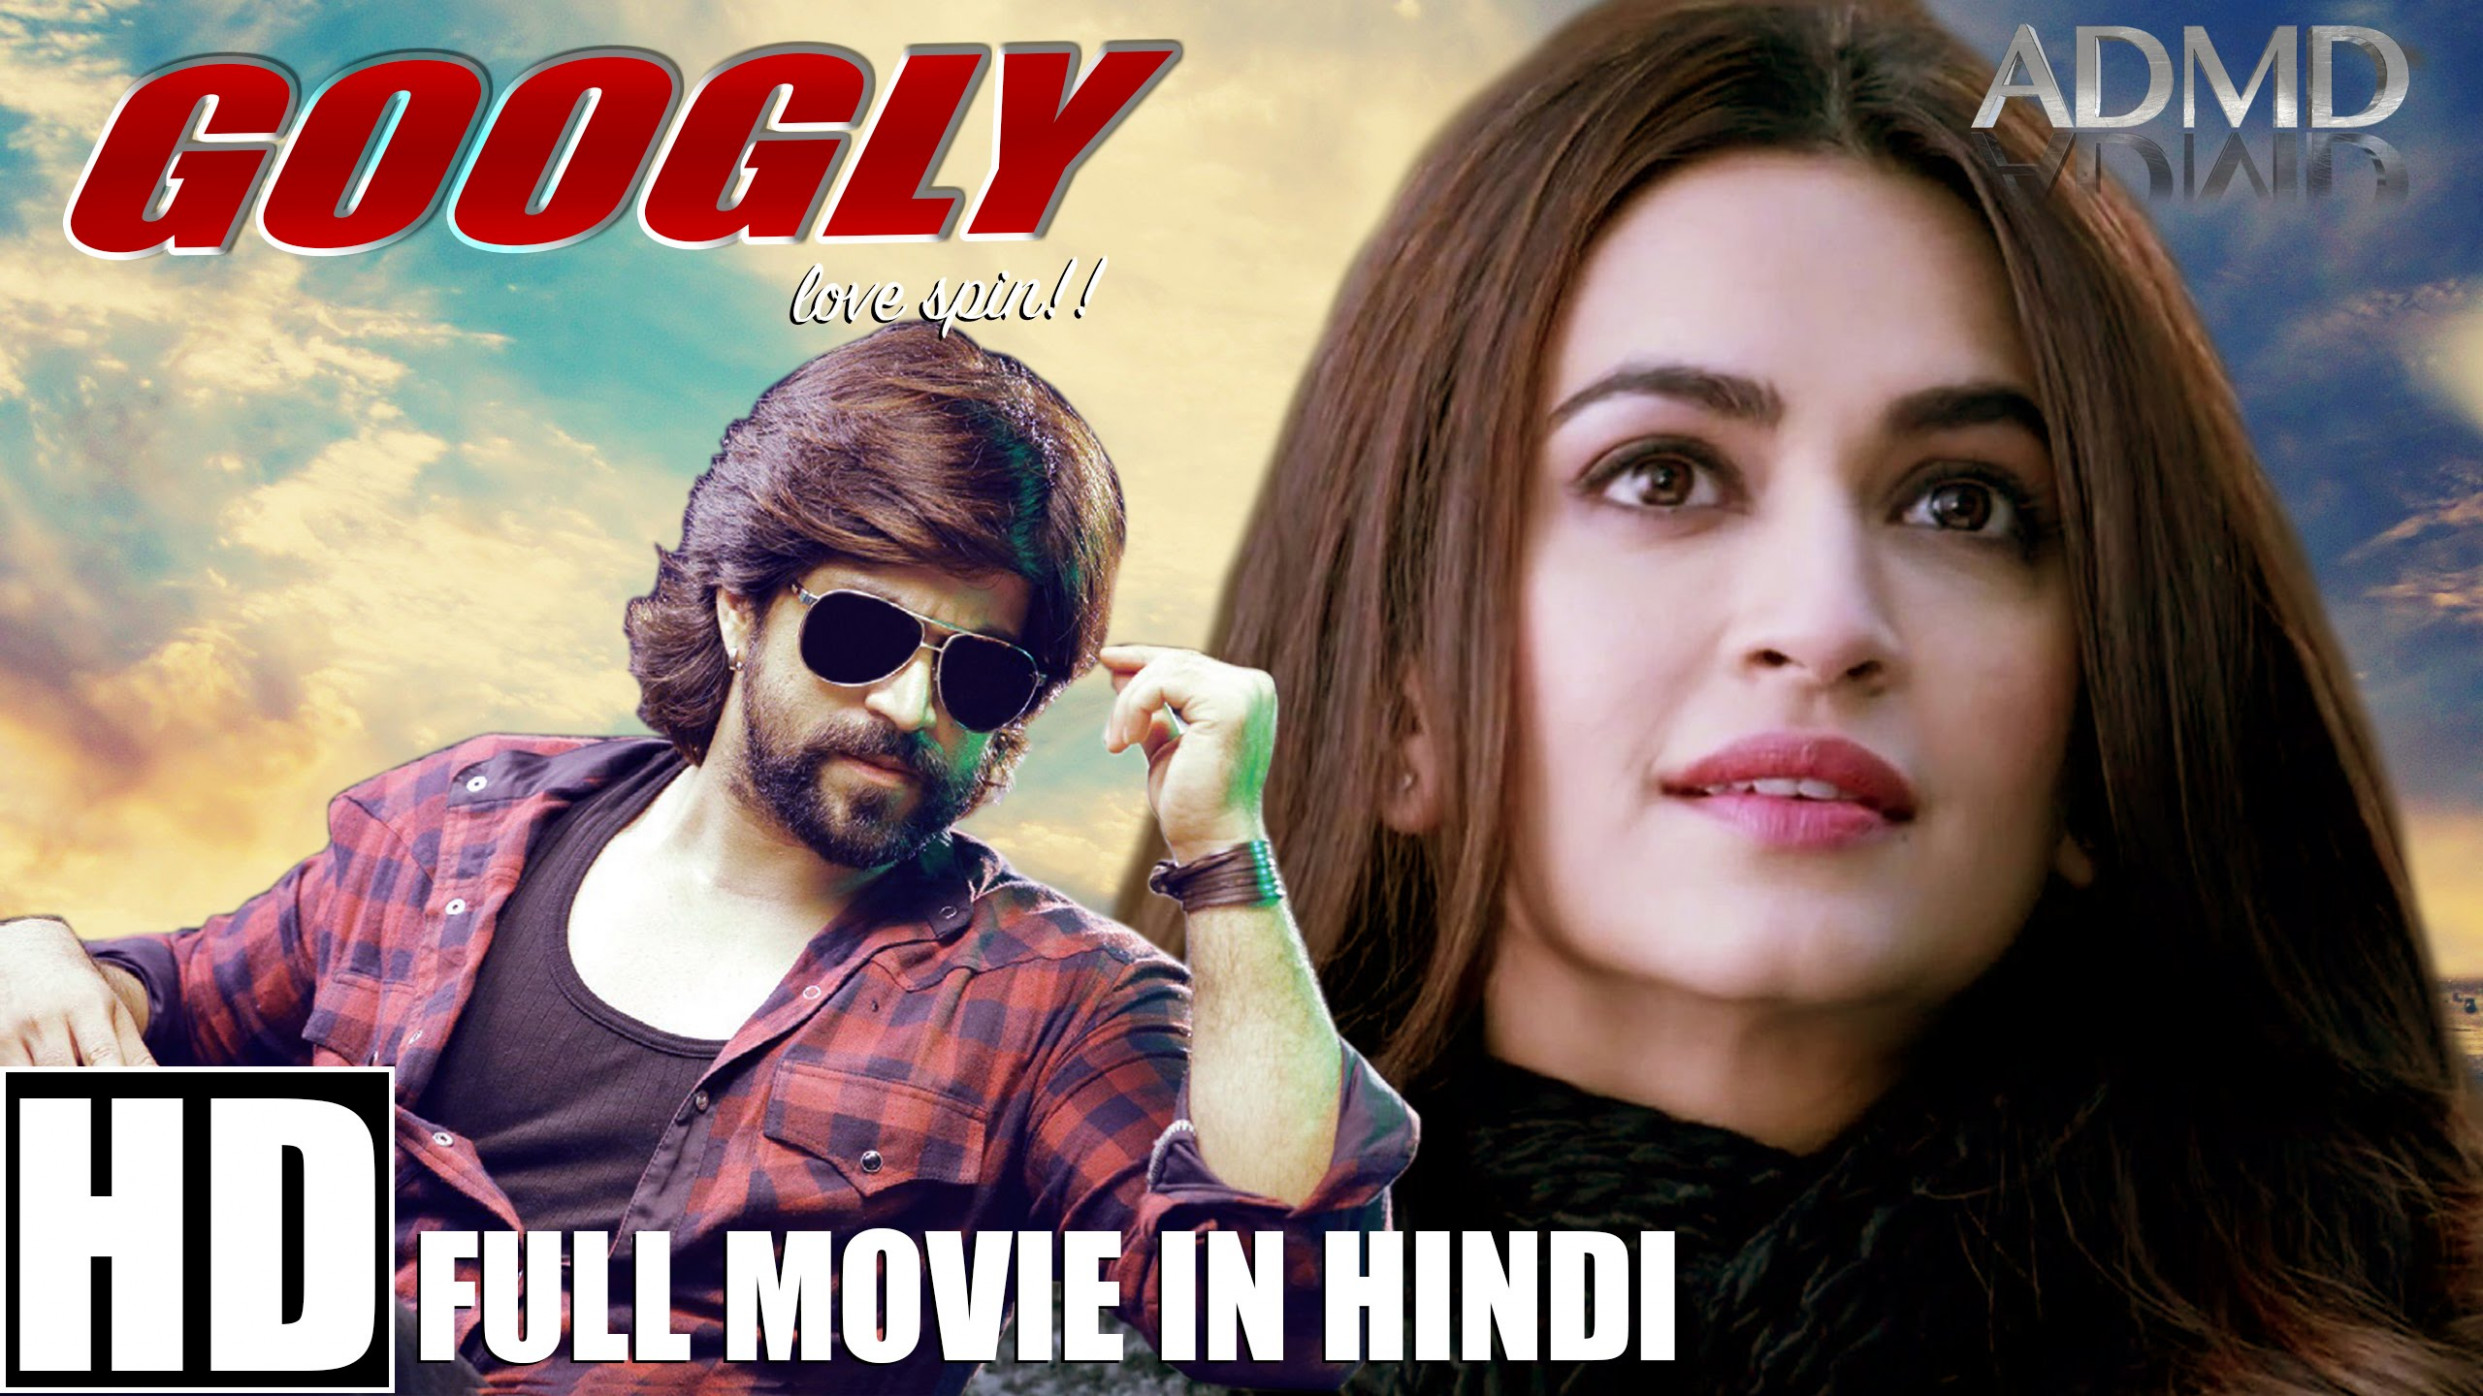 Blockbuster: Googly (2016) New Full Movie in Hindi | South ...